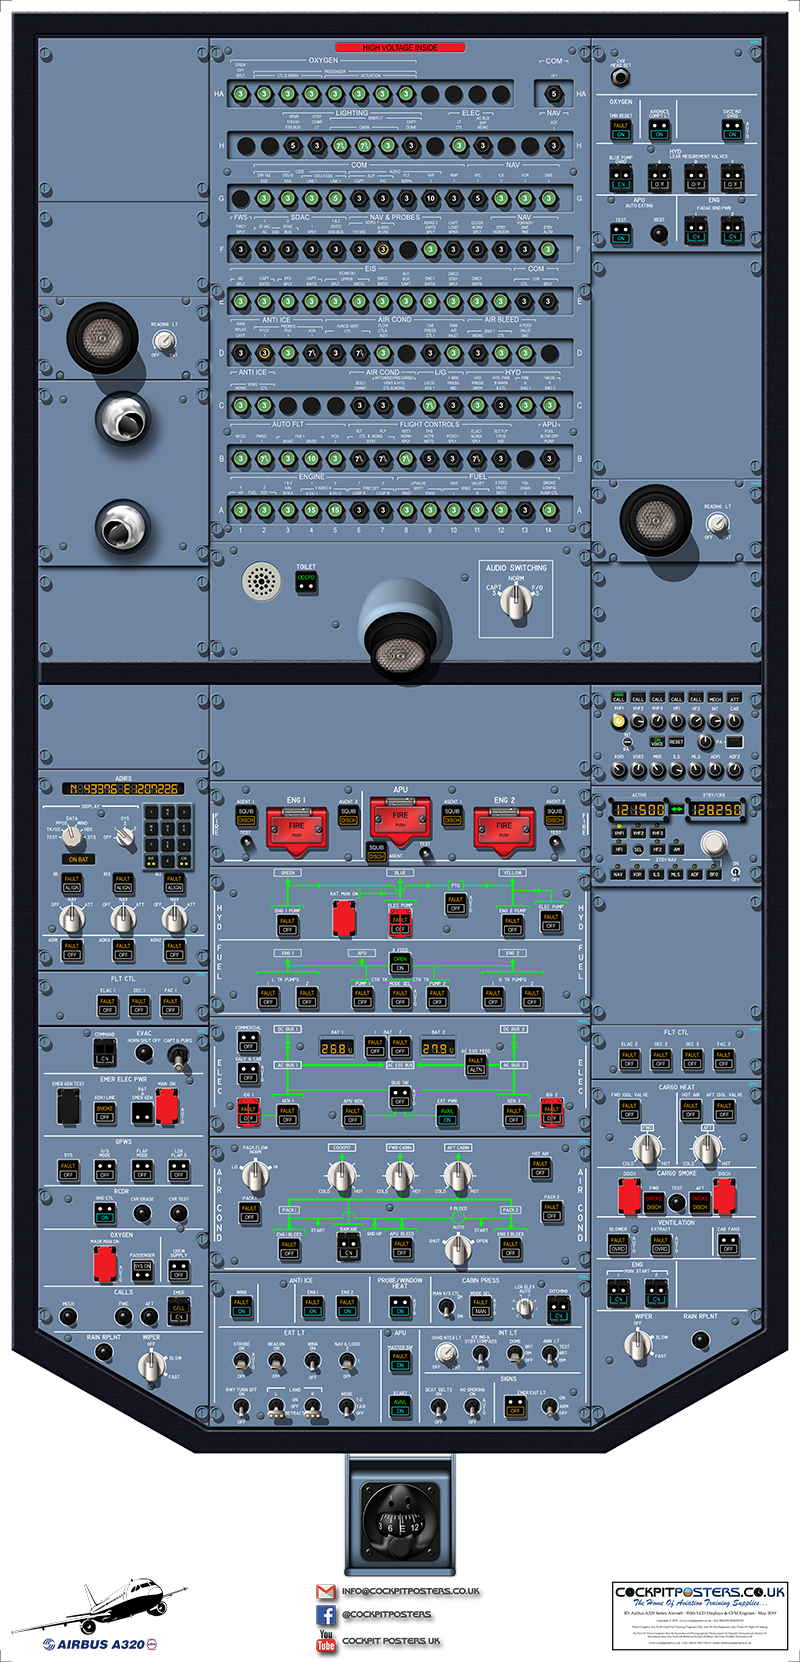 #04 - Airbus A319/A320/A321 LCD CFM Cockpit Poster